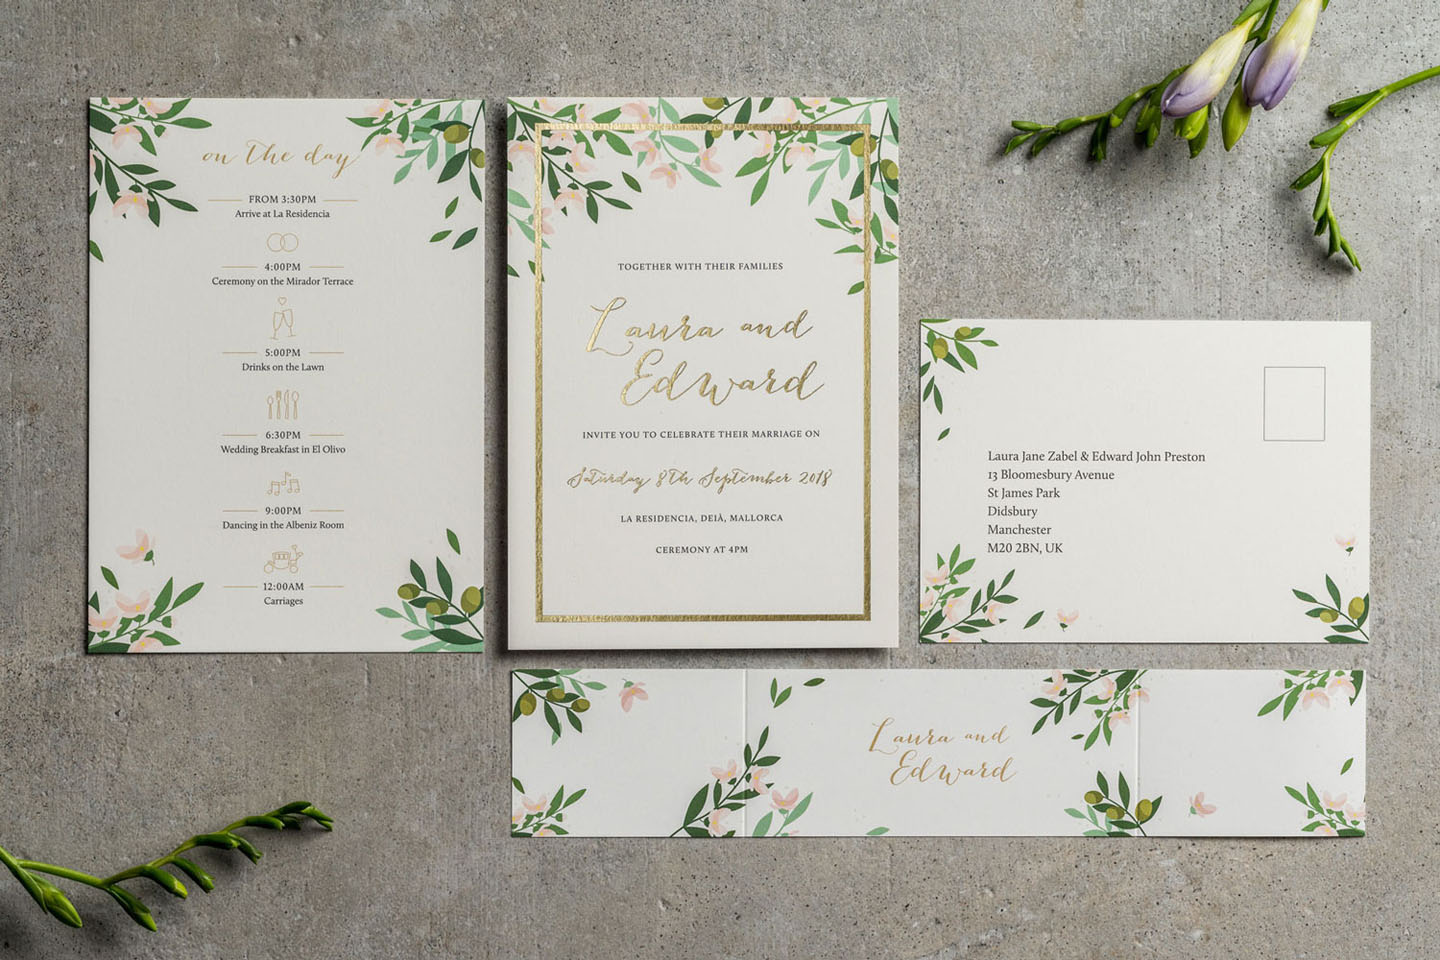 Floral Wedding Invitations | Hottest Luxury Wedding Stationery Trends 2019 | Foil Invite Company Blog